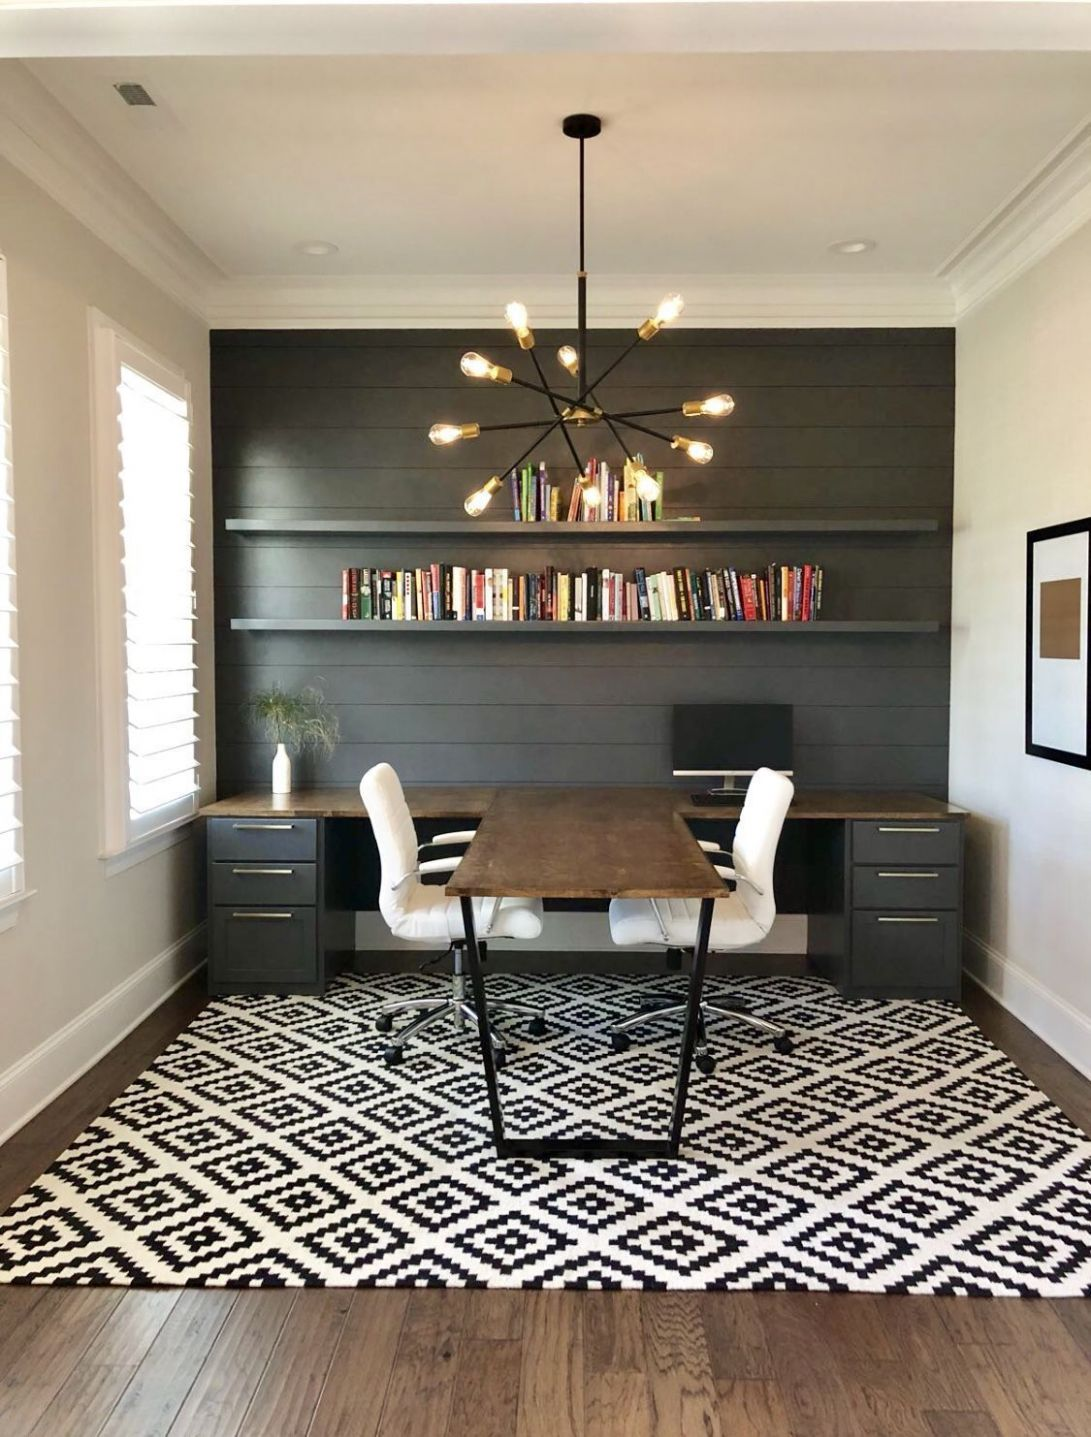 12 Amazing Home Office Ideas Will Make You Want to Work | Home ..